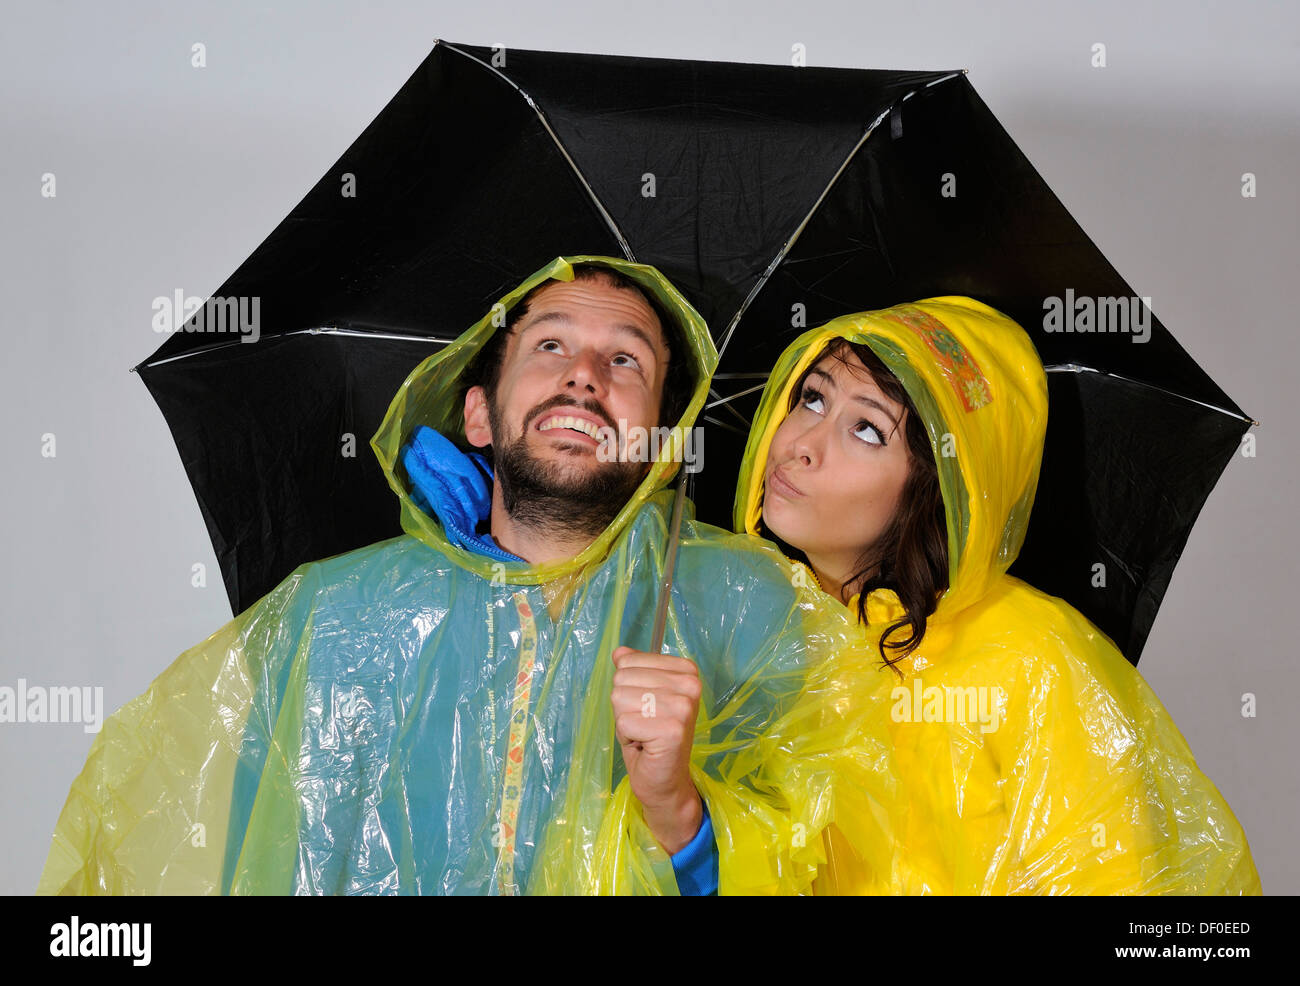 Man and woman standing under an umbrella, symbolic image for weather report - Stock Image